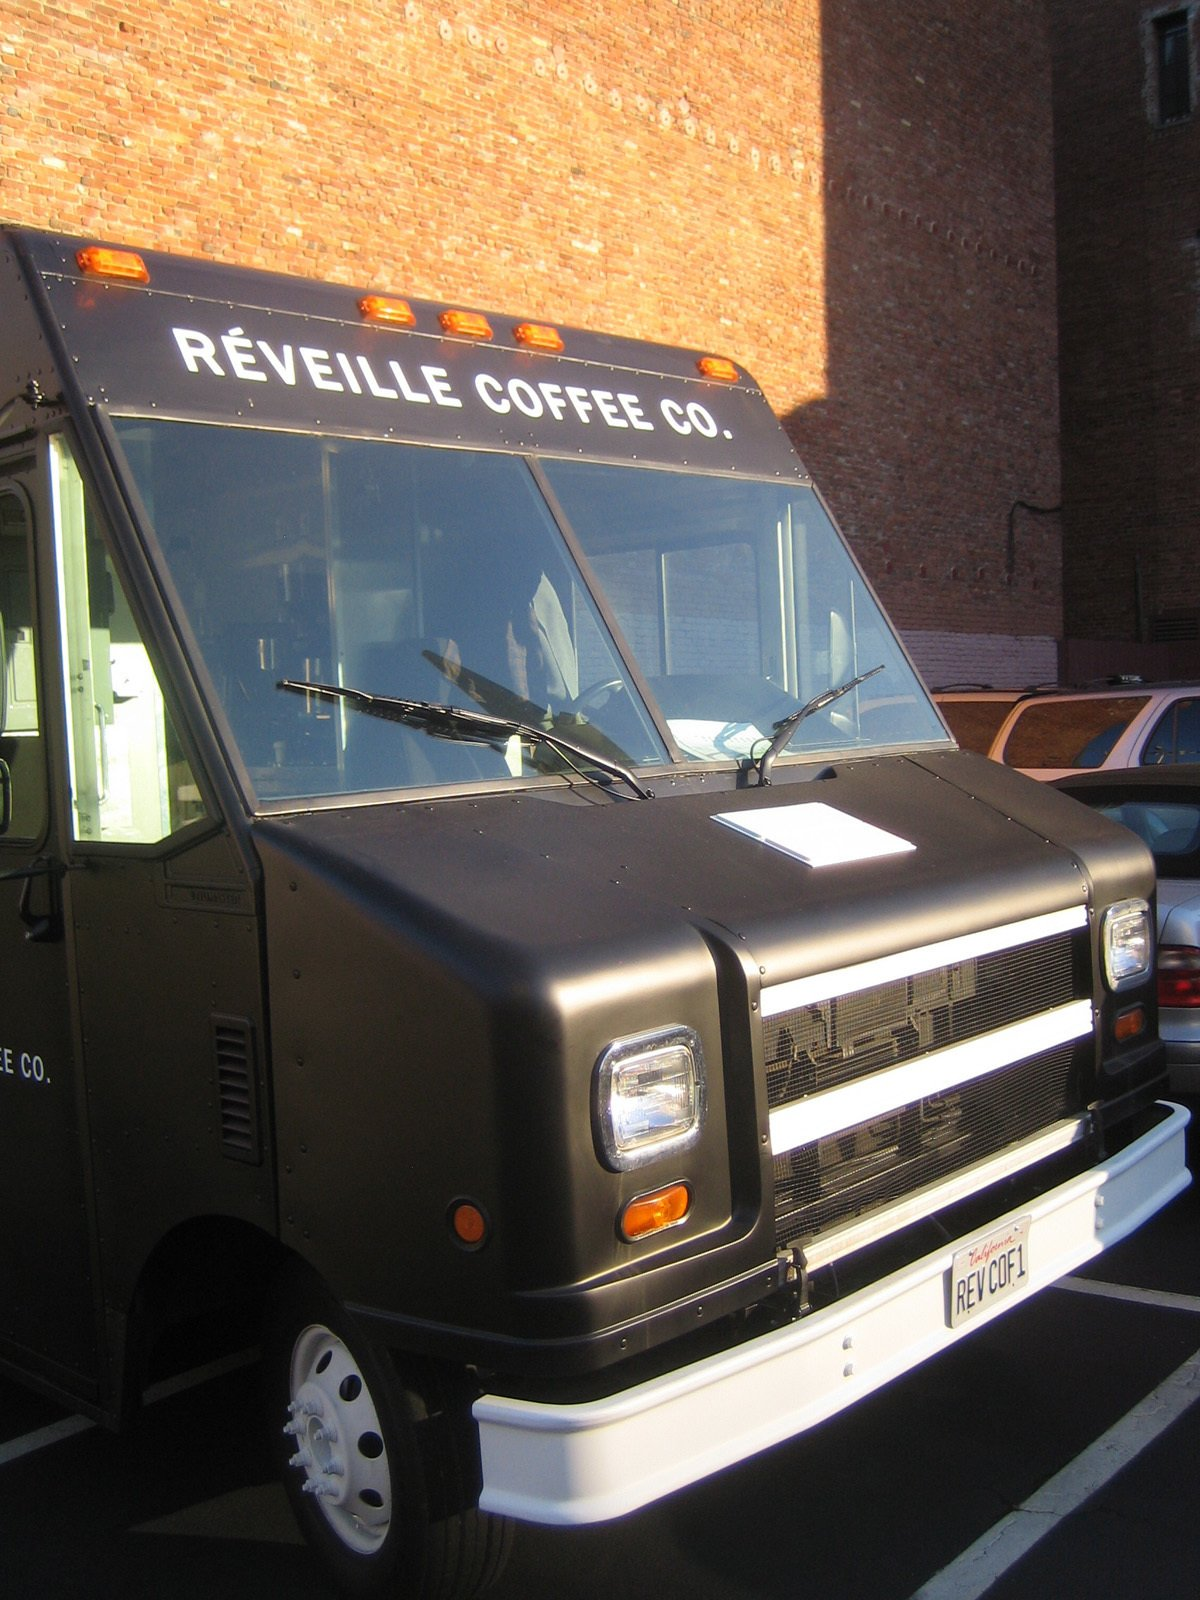 """Check out that vanity plate, """"REVCOF1.""""  Photo 2 of 8 in Réveille Coffee Company Truck"""